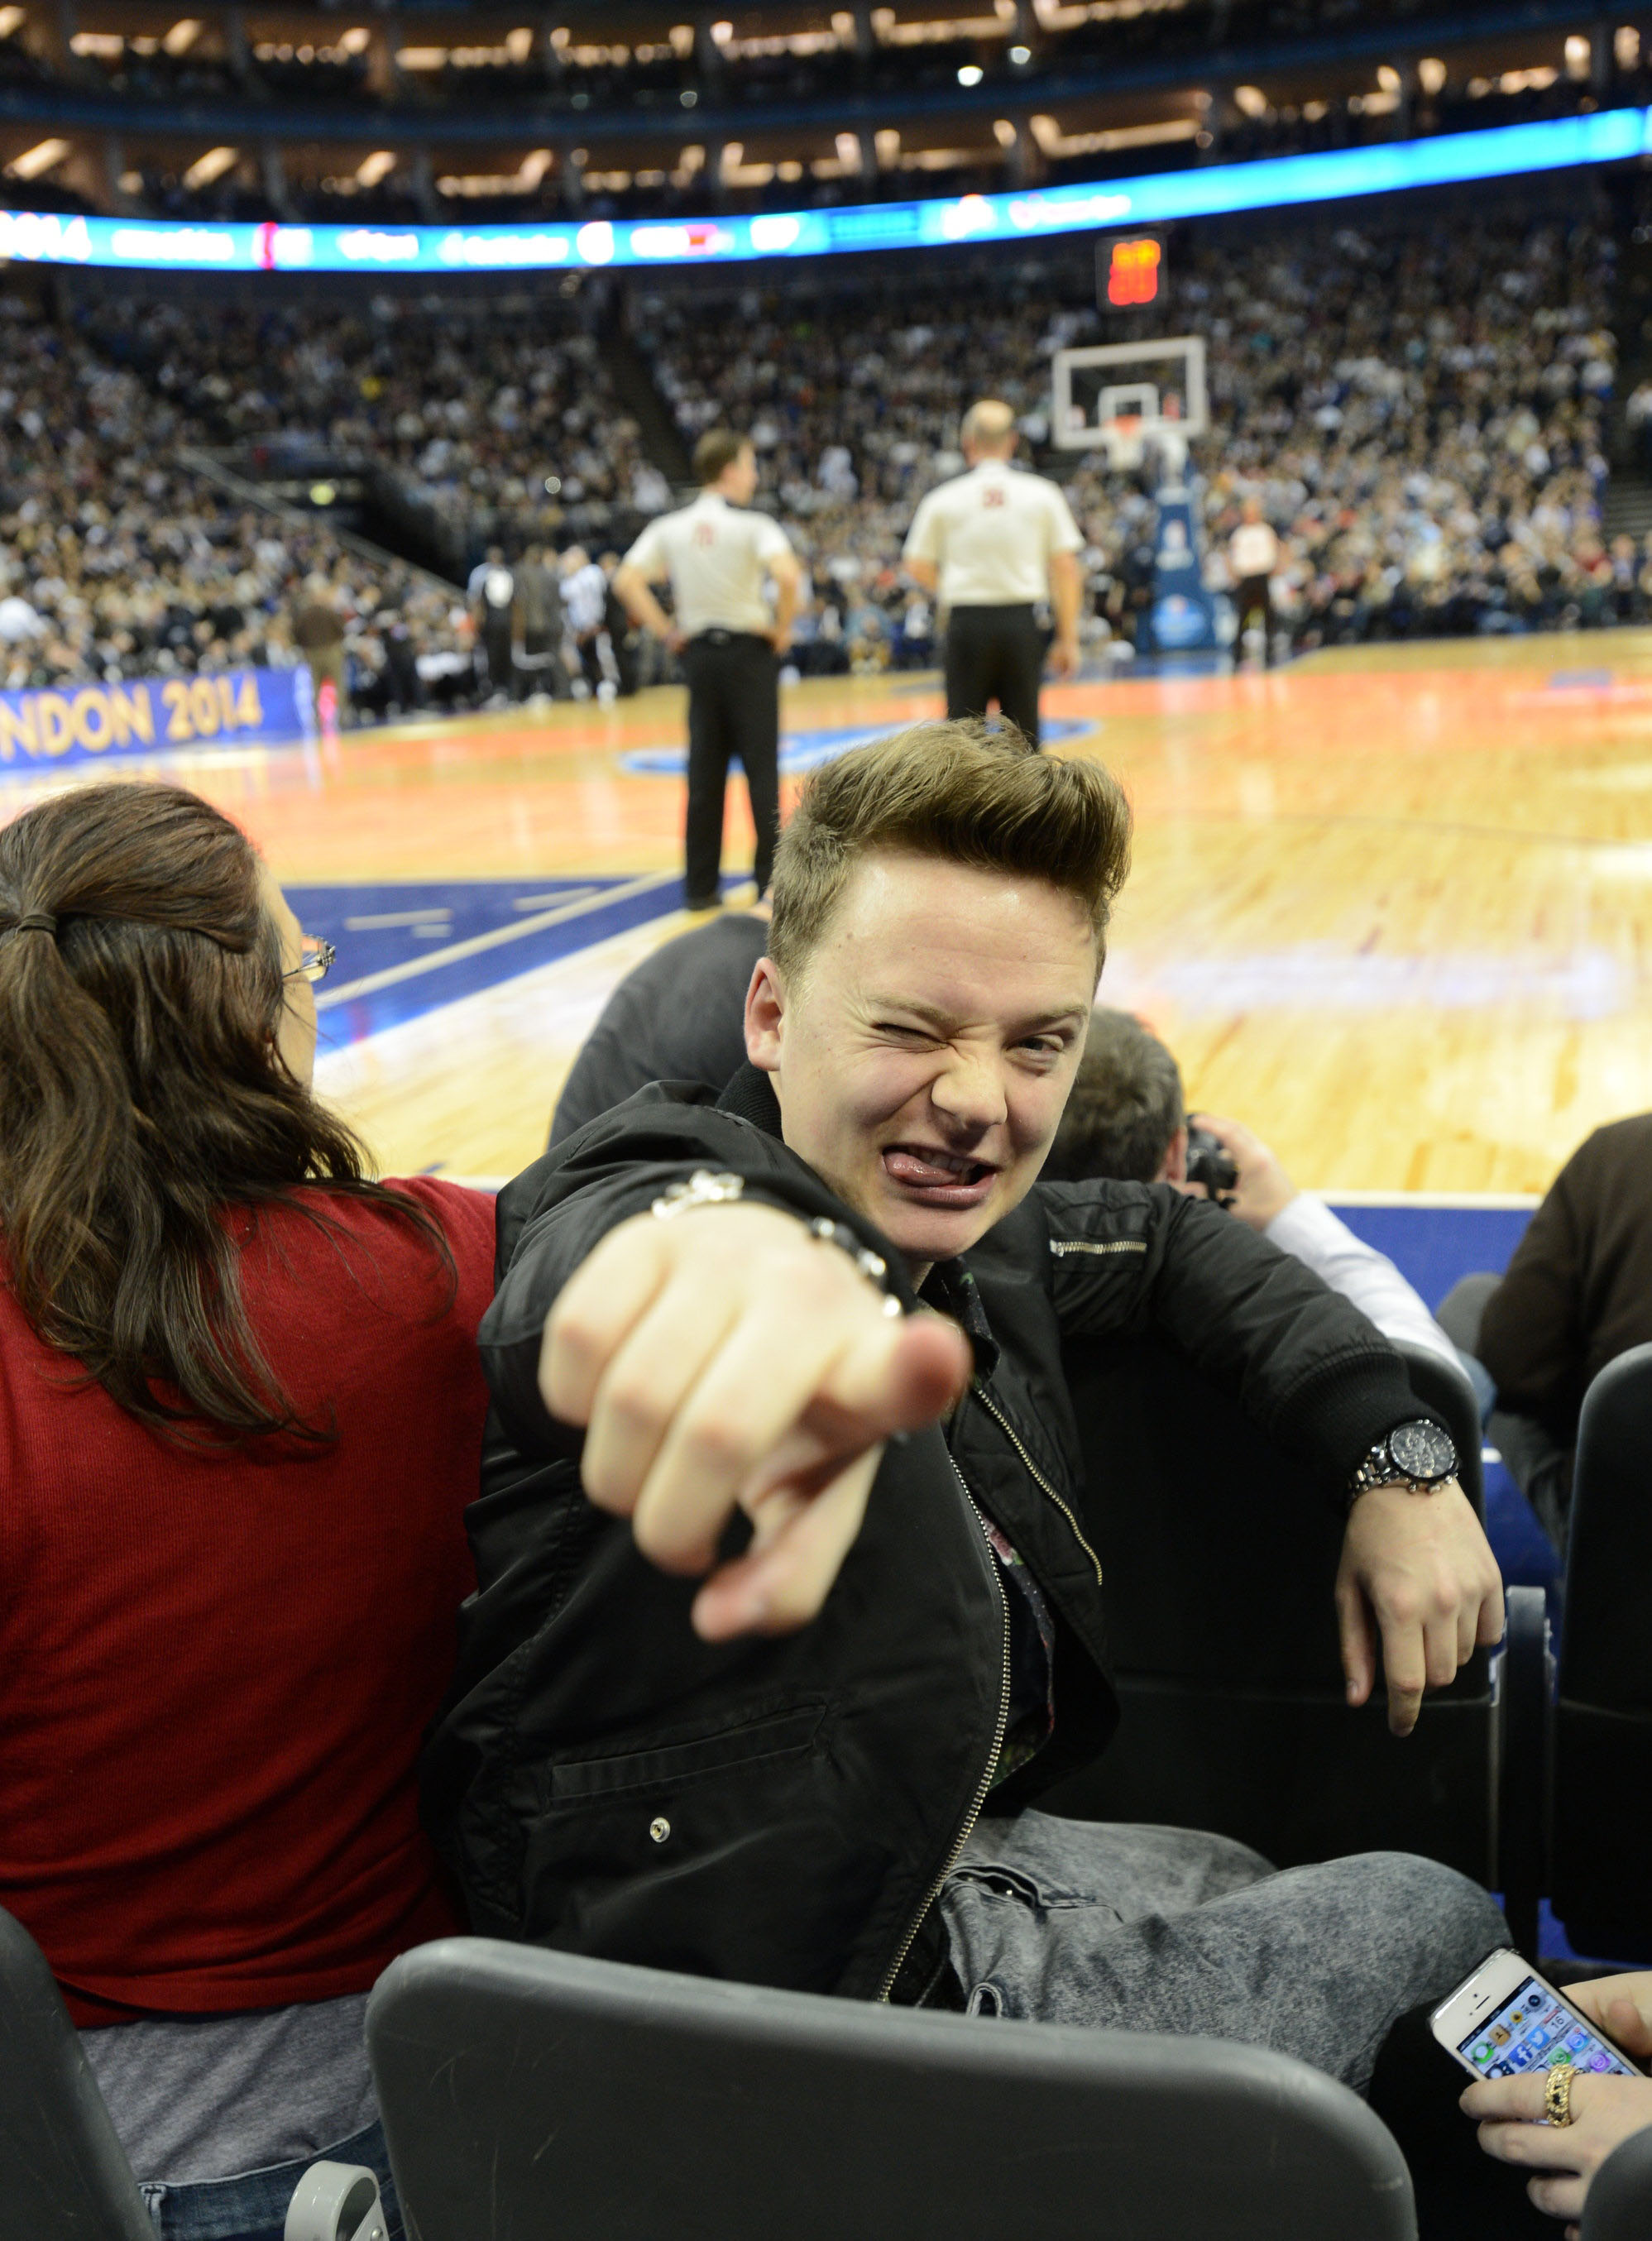 Conor Maynard has his sights set on a collaborative rematch with Pharrell Williams (Picture: Jennifer Pottheiser/NBAE via Getty Images)